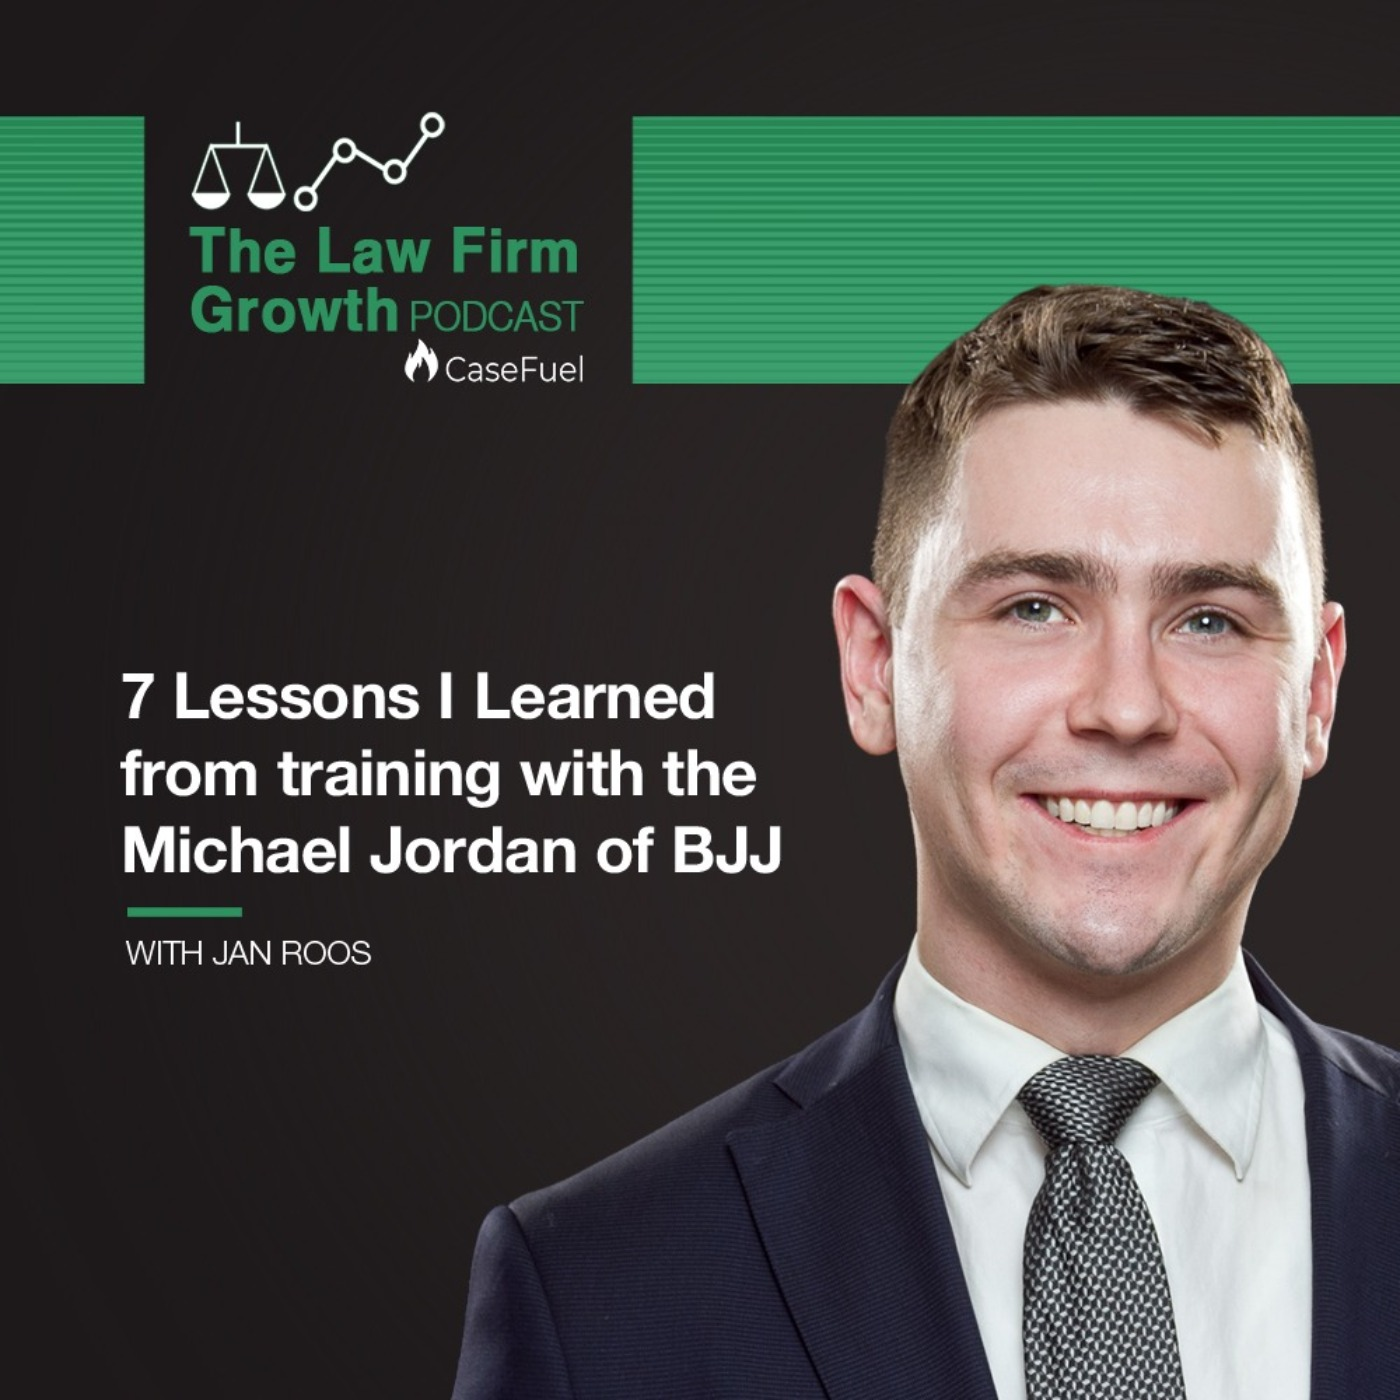 7 Lessons I Learned from Training with the Michael Jordan of BJJ